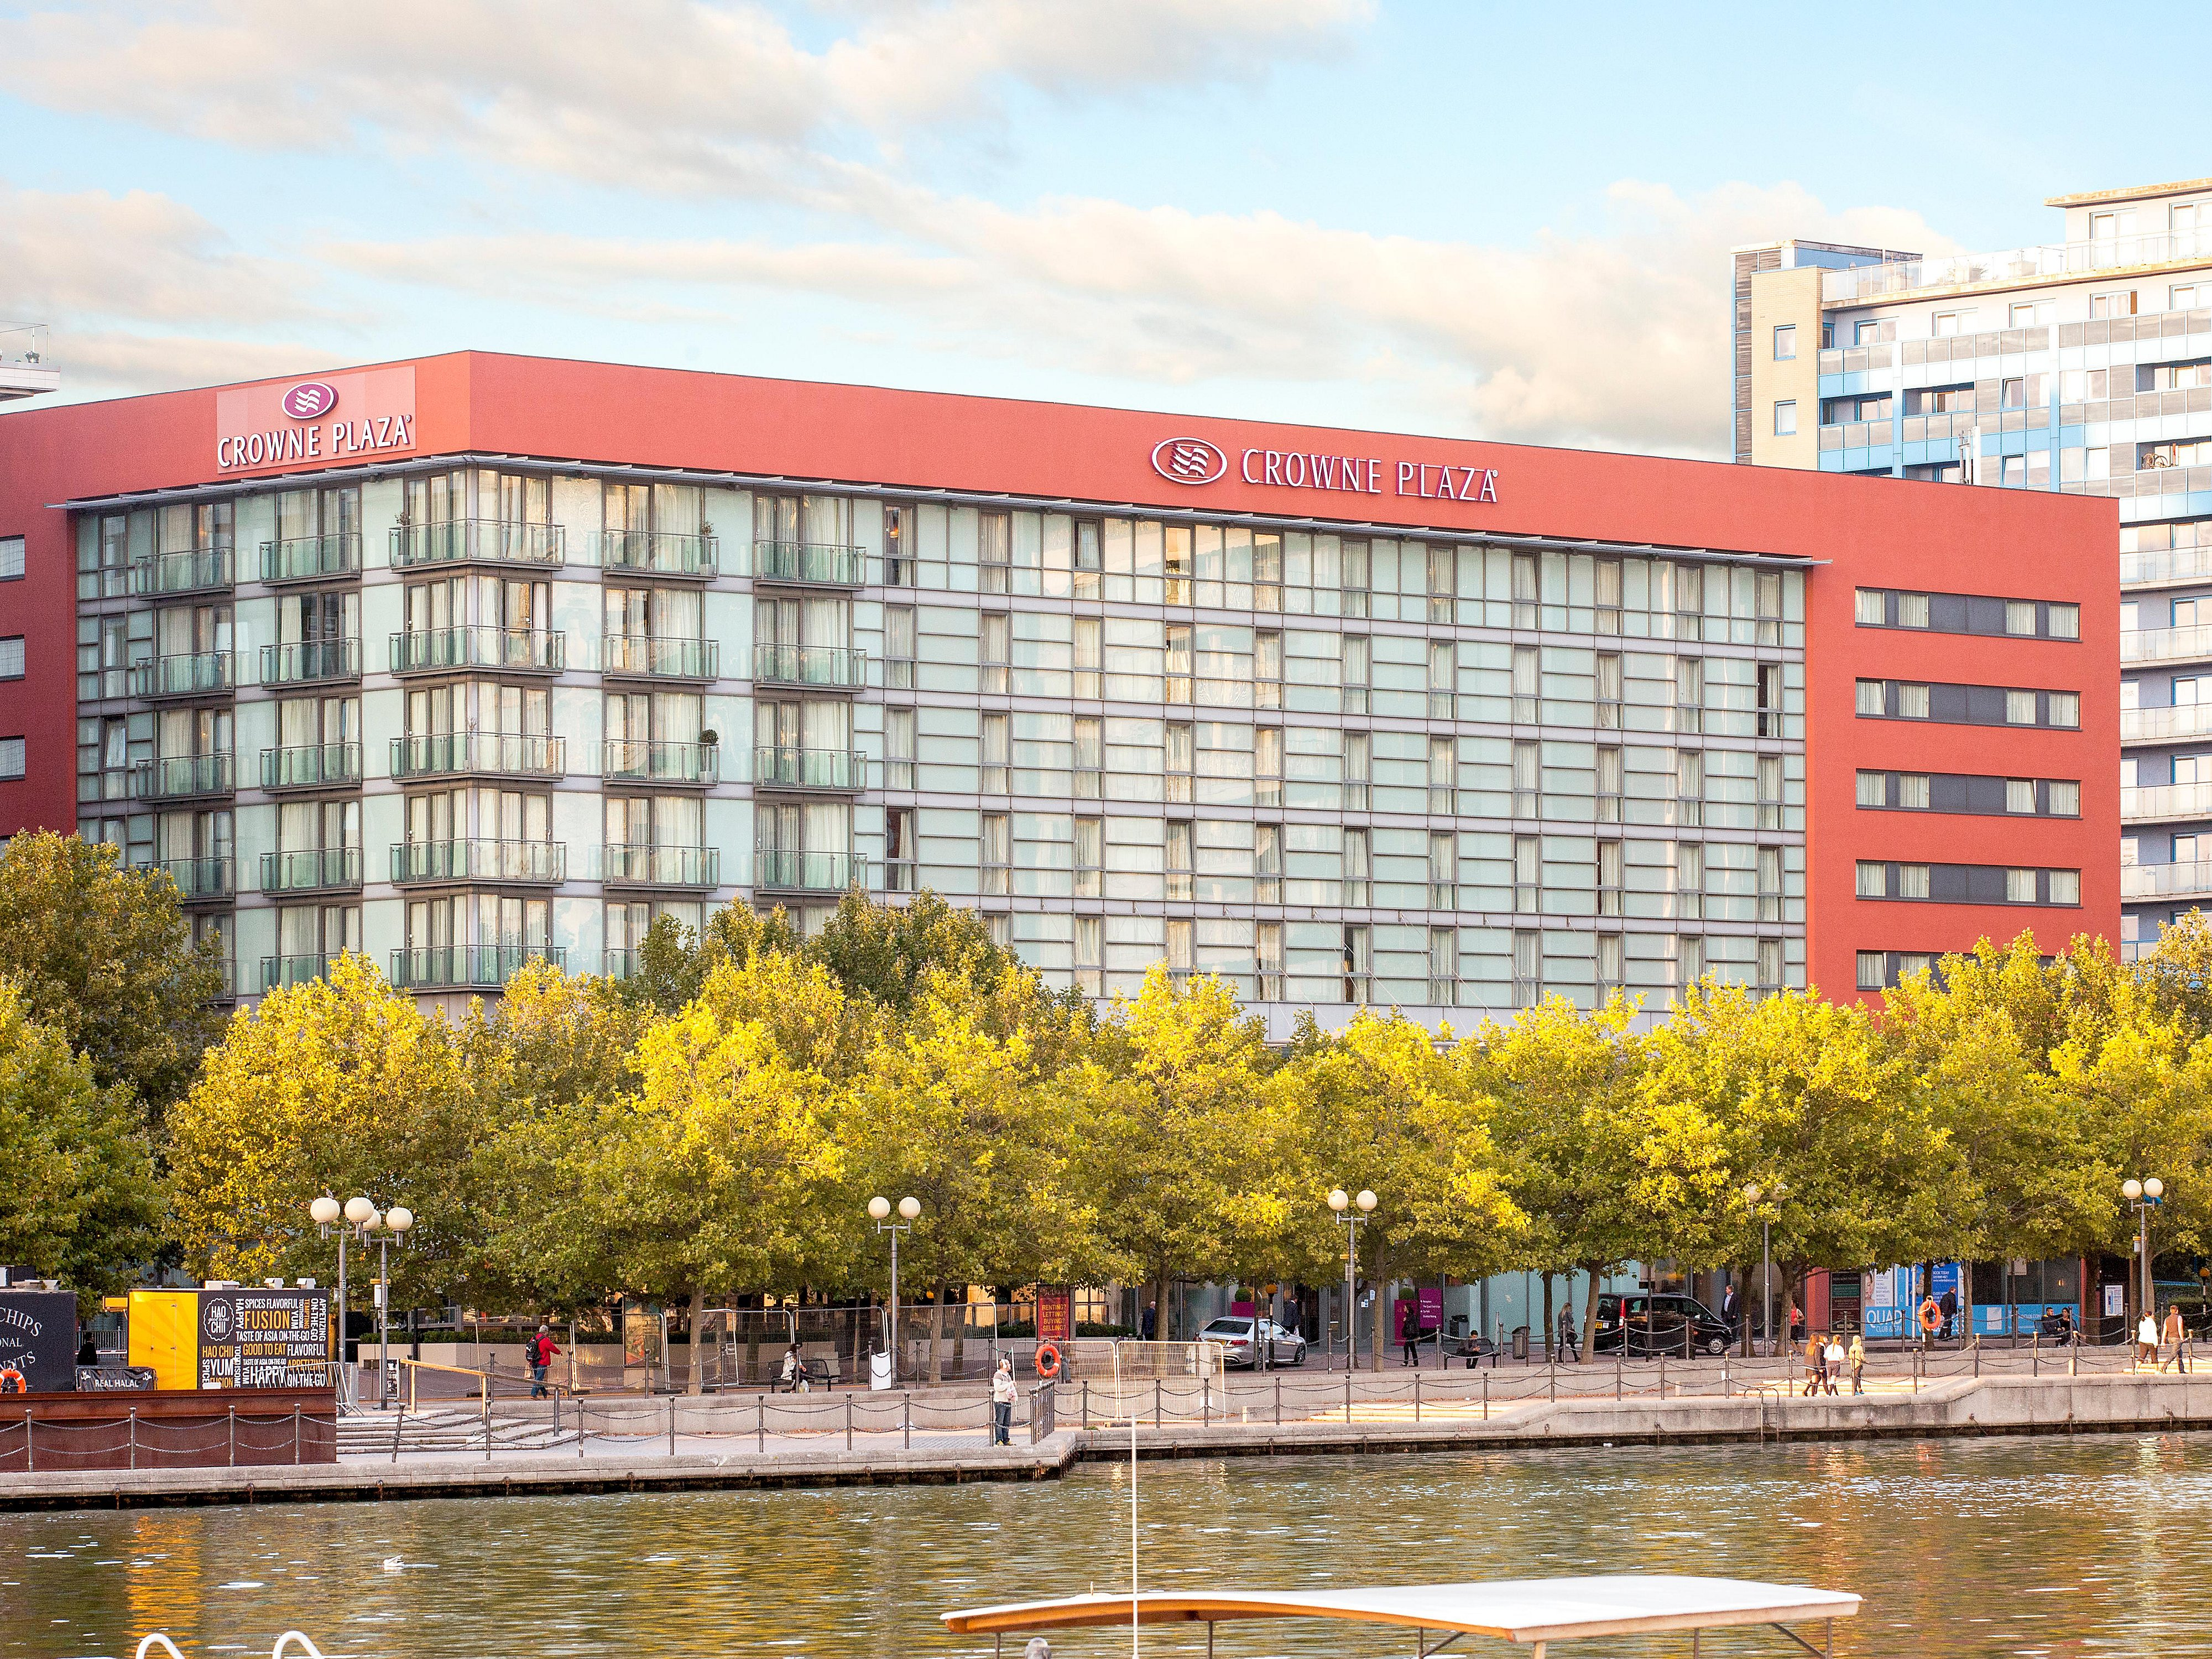 D Exhibition Docklands : Business hotel with pool: crowne plaza london docklands